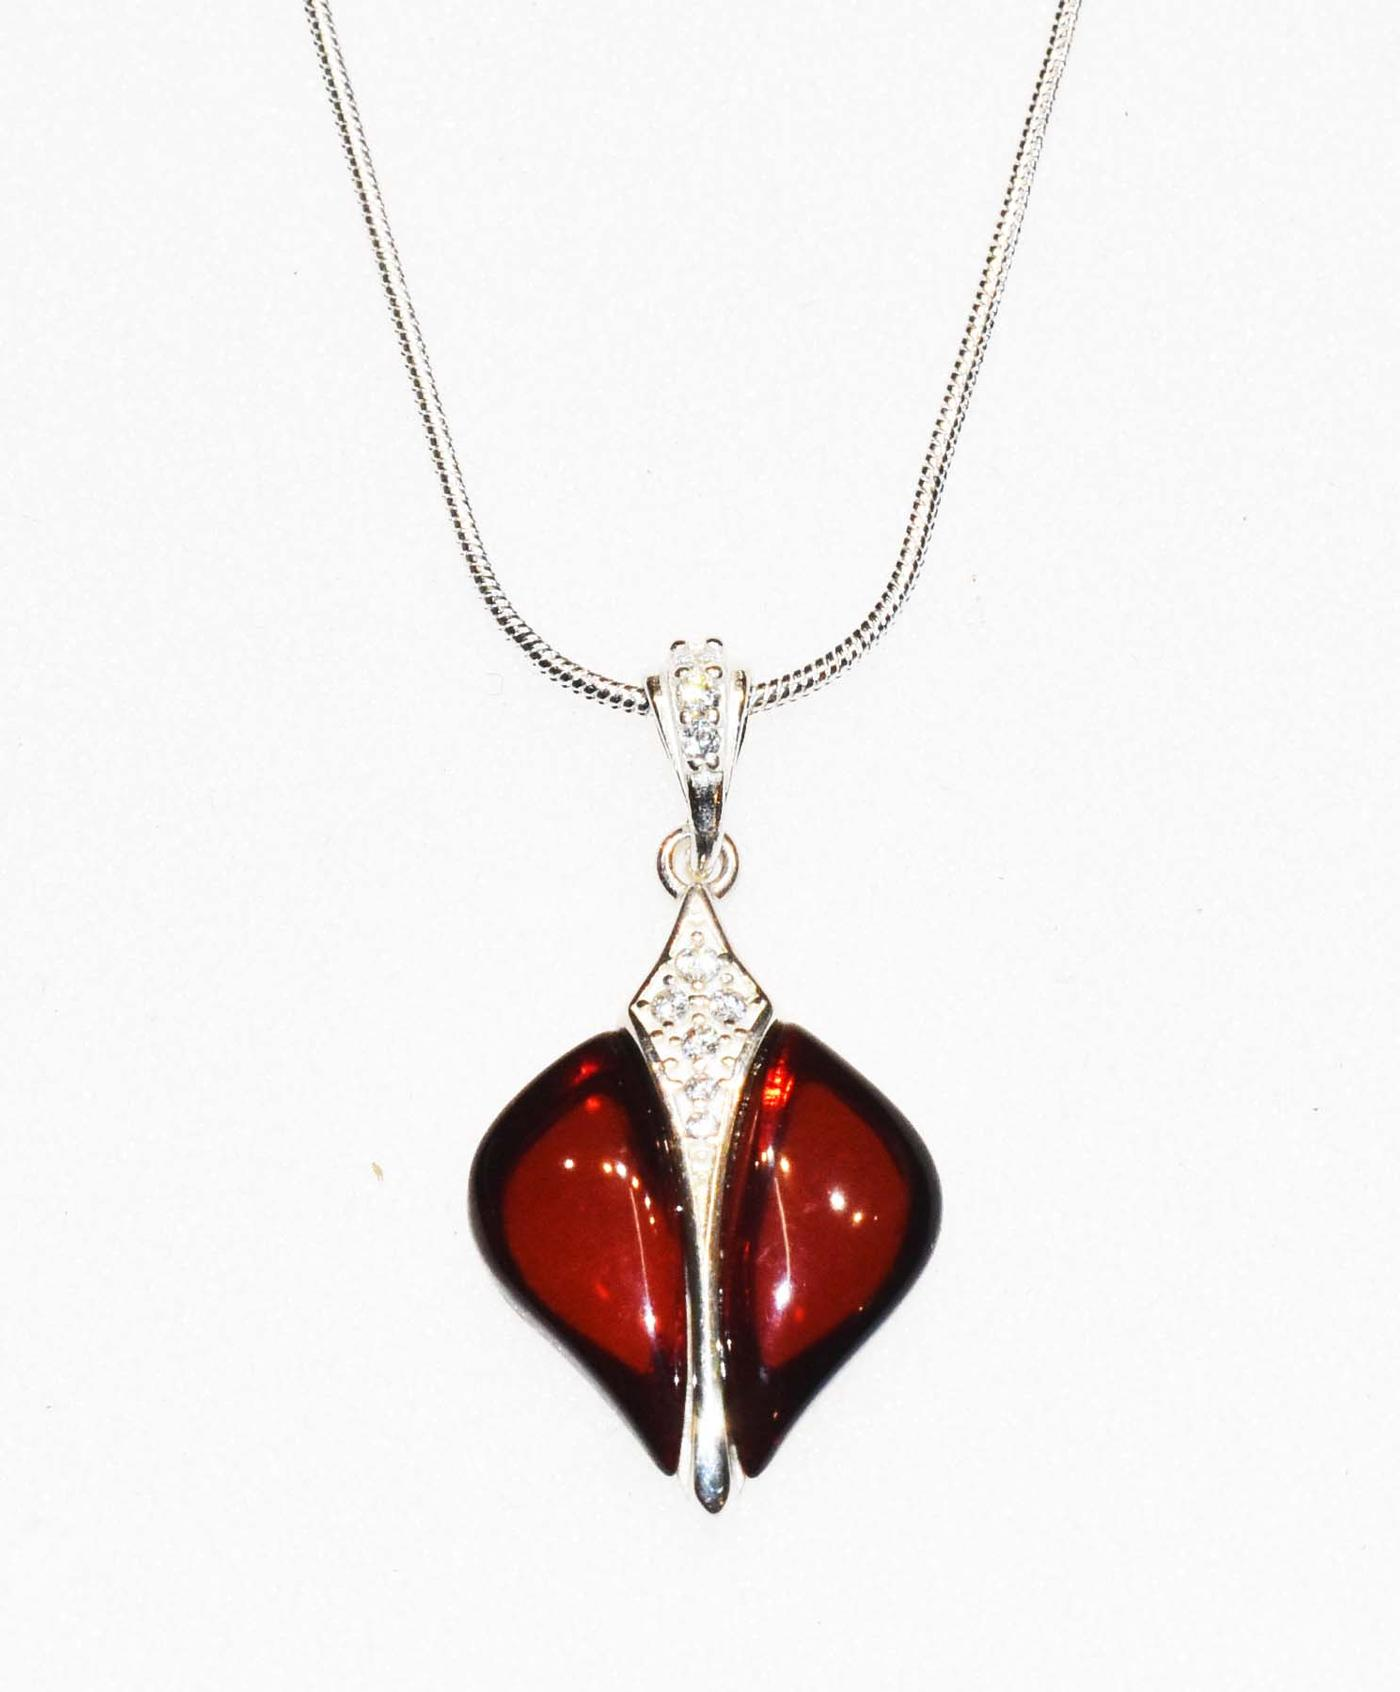 Reach colour Baltic amber pendant with chain (P-02a)